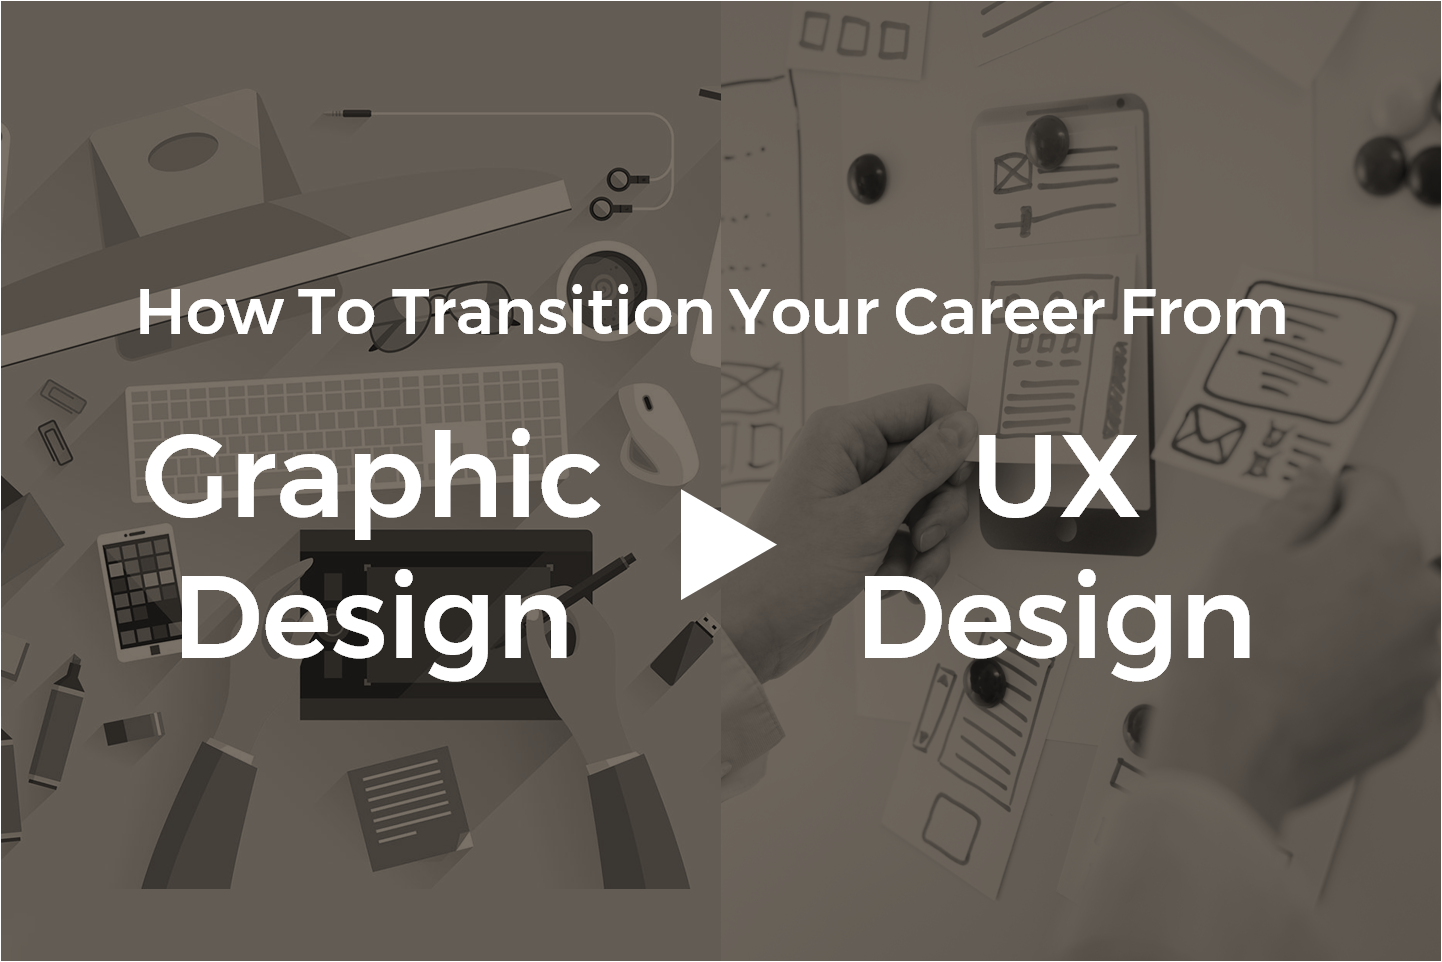 How To Make A Career Change From Graphic Designer To UX Designer - Image 1